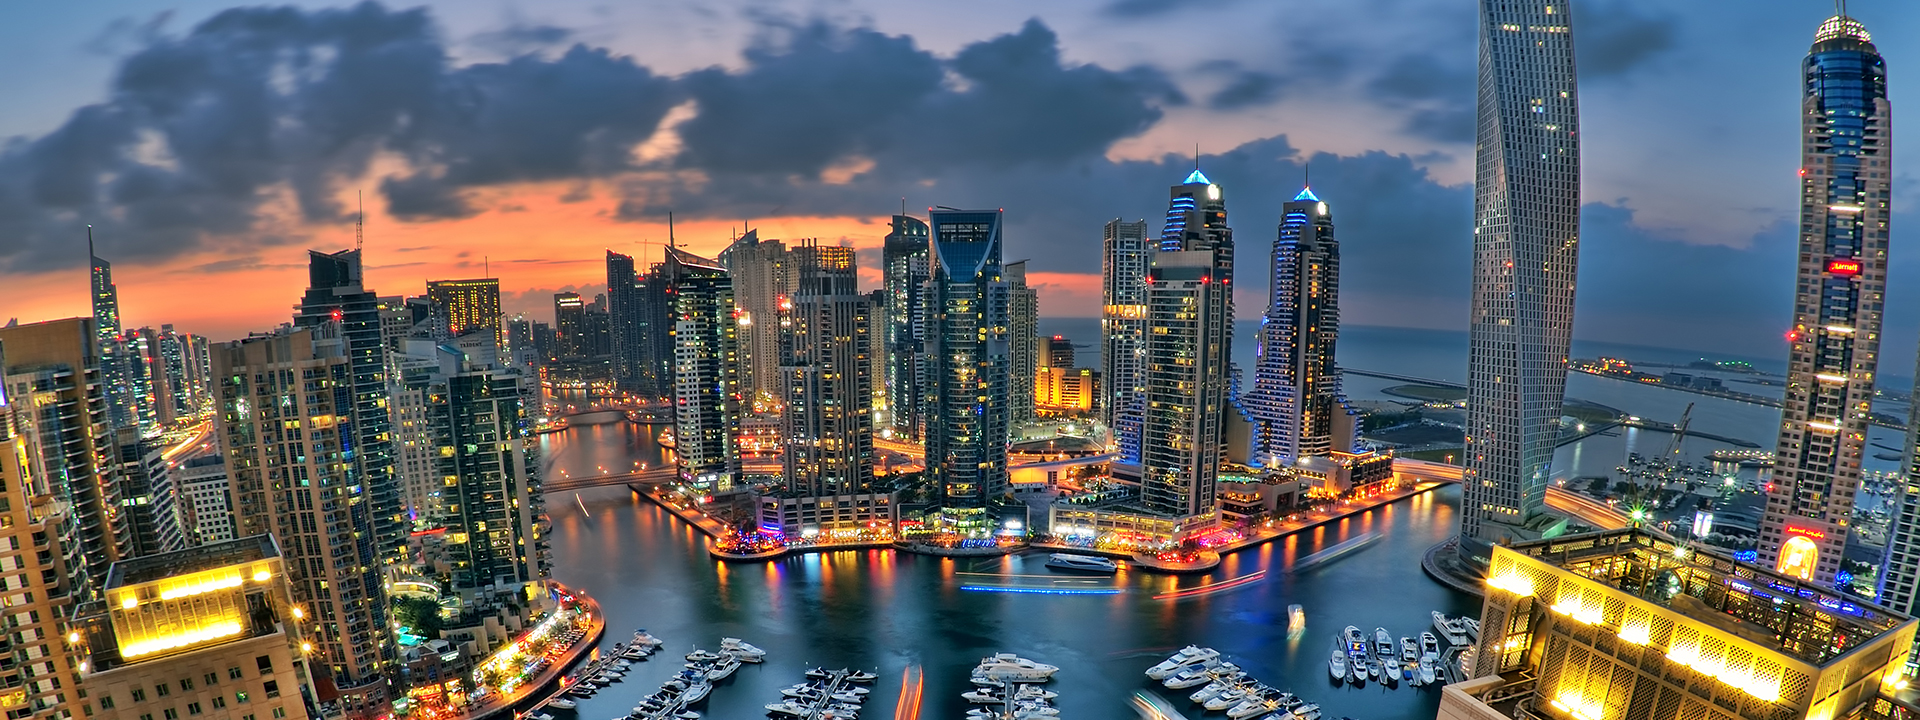 Global Touch - Dubai's Marina